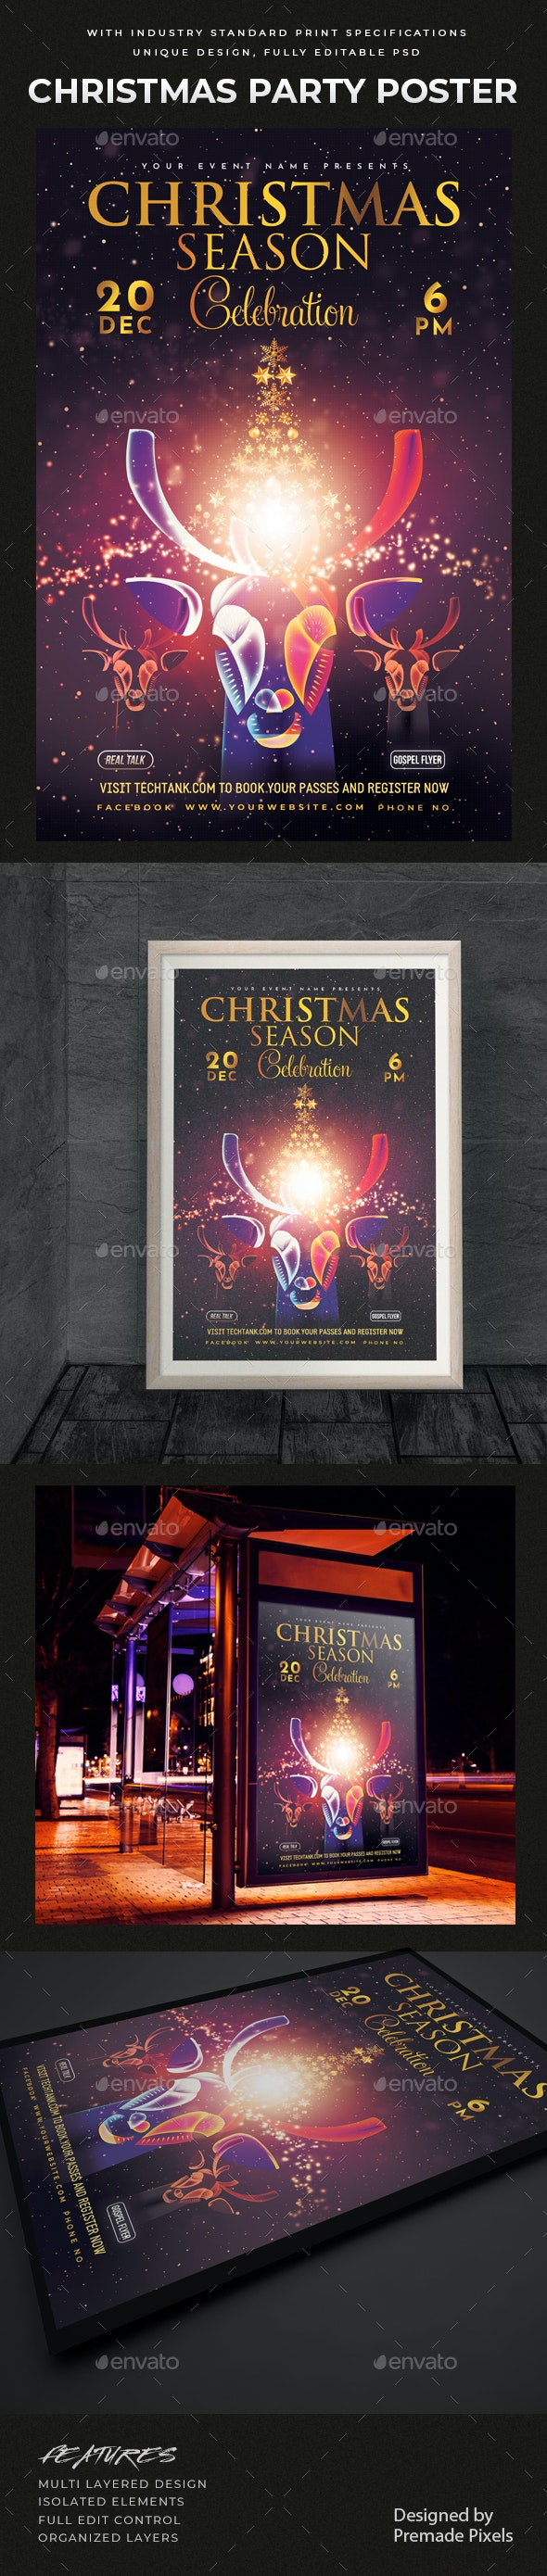 Christmas Party Poster.Christmas Party Celebration Poster